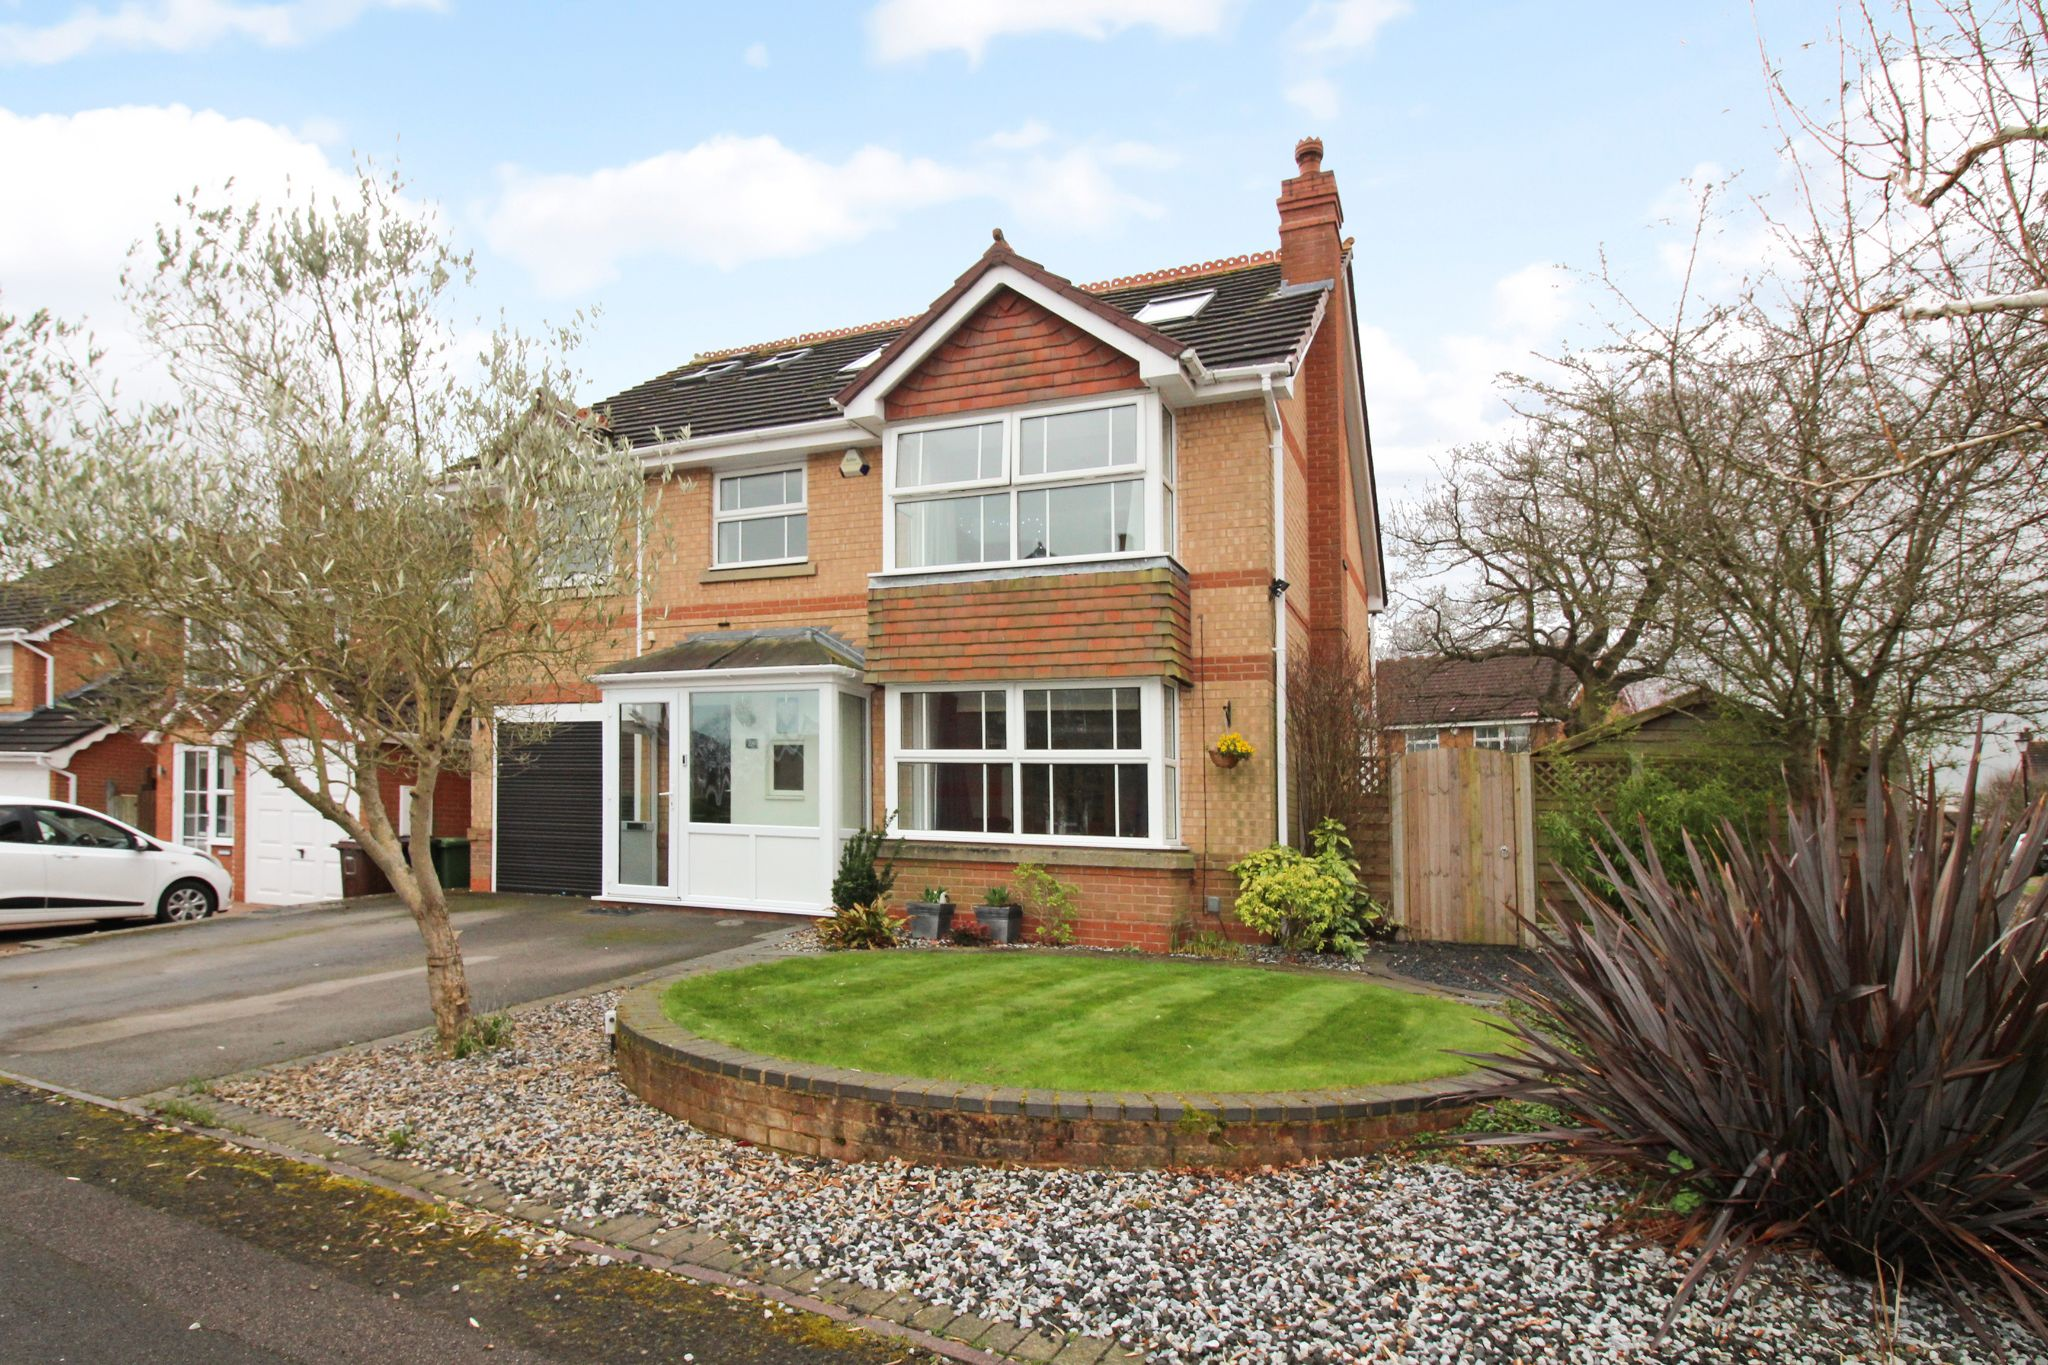 5 bedroom detached house SSTC in Solihull - Photograph 19.